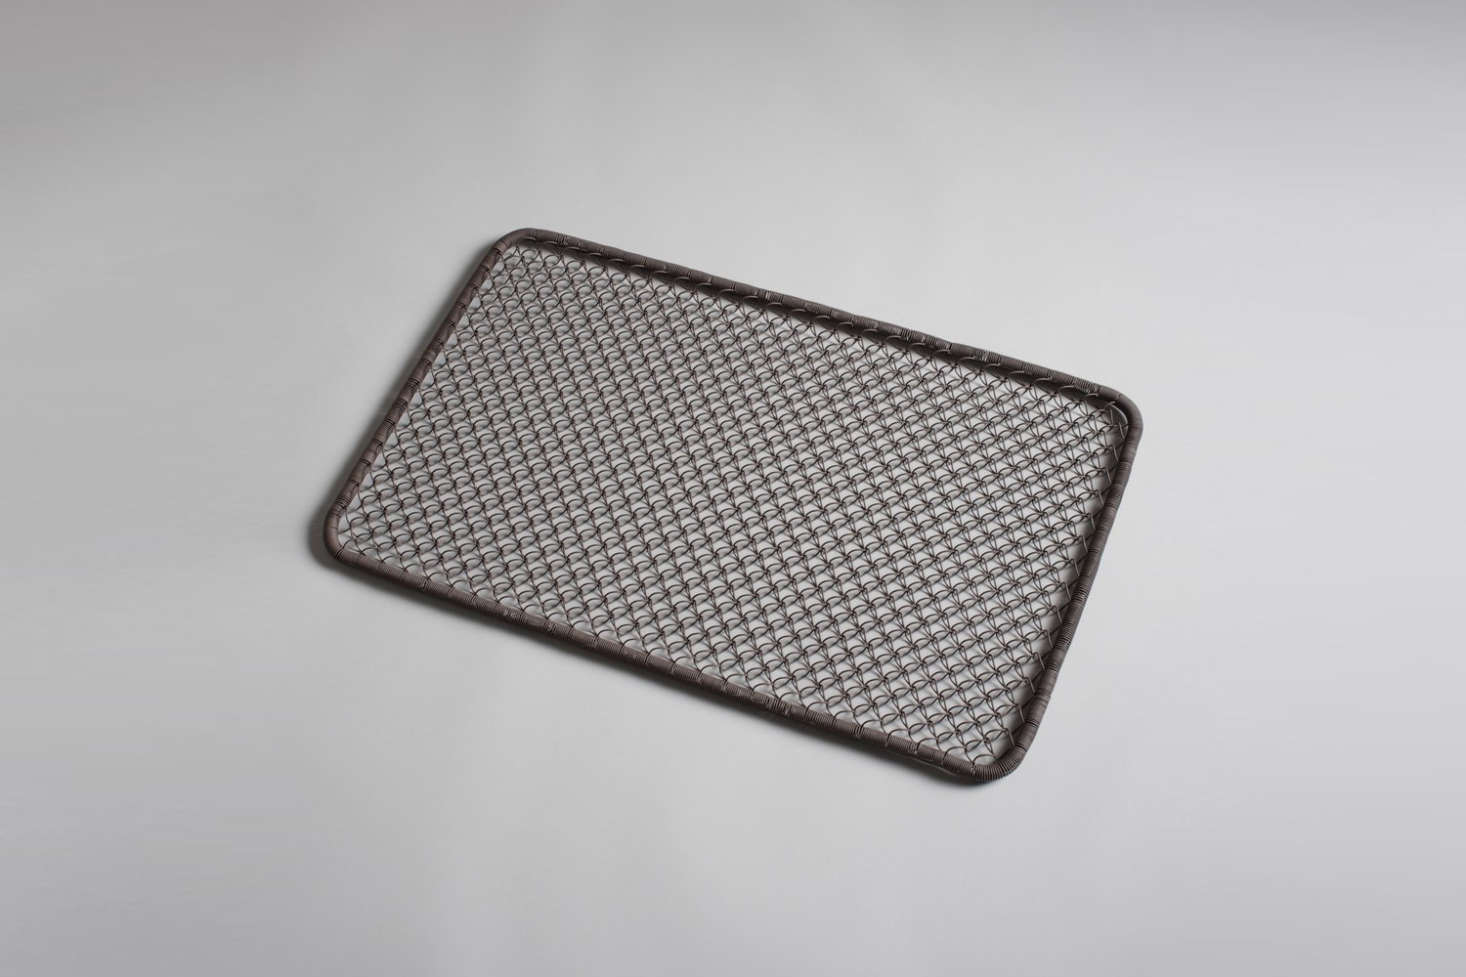 A Wire Doormat made of brown-tinted looped metal is $58 at Burkelman.